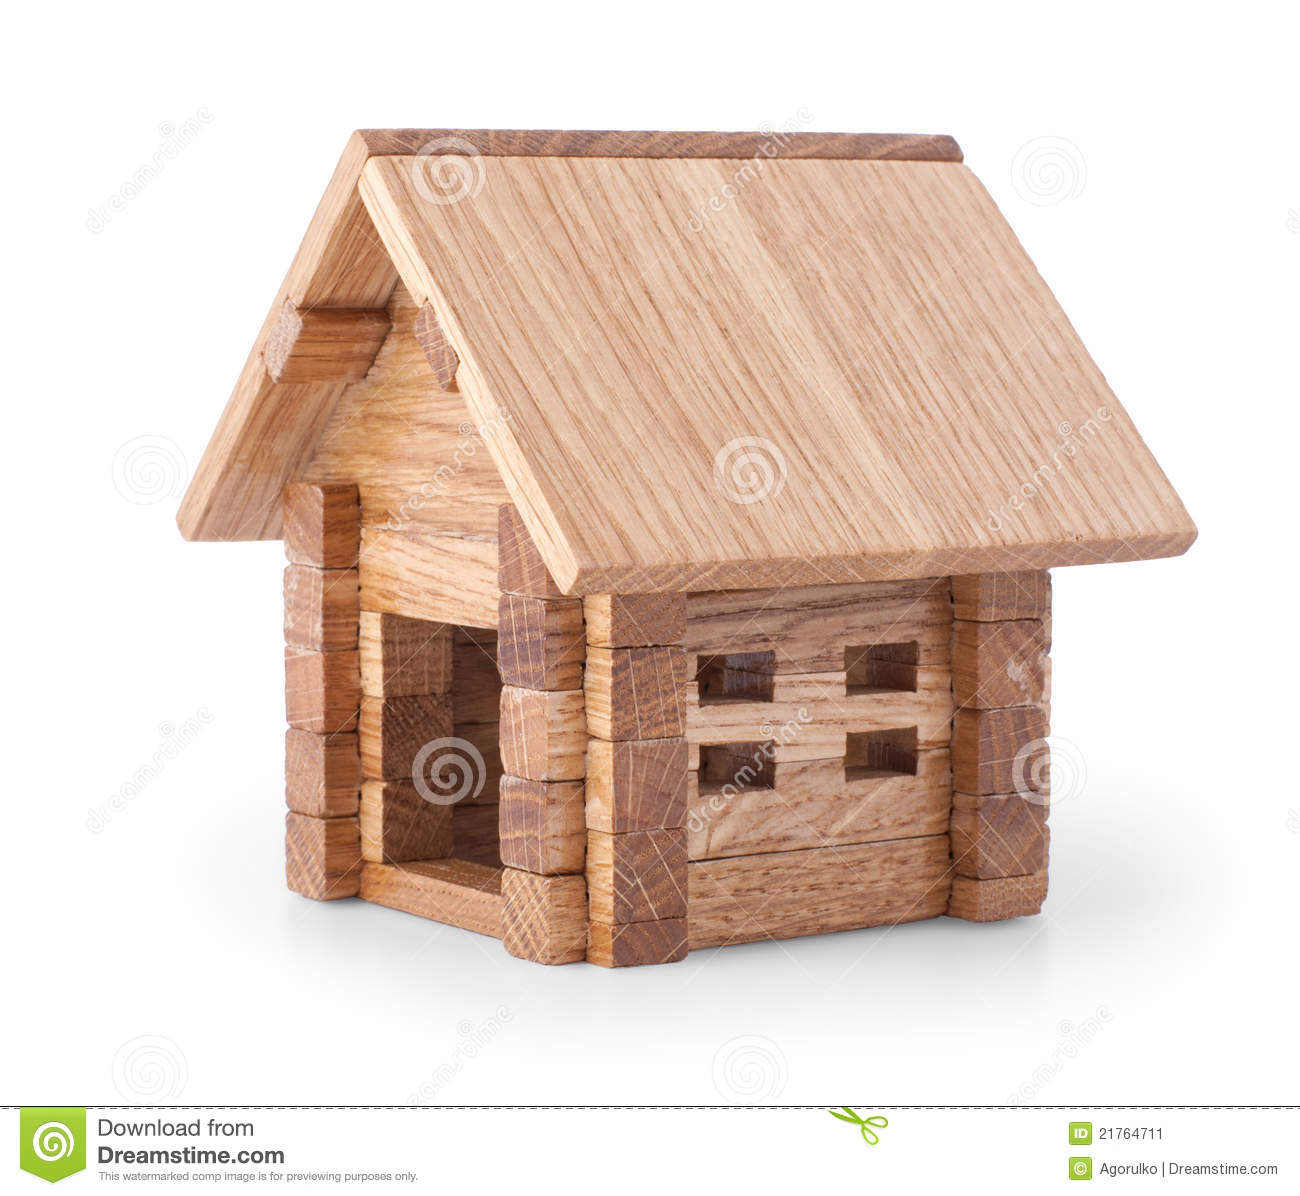 Toy Wooden House Over White Stock Image - Image: 21764711